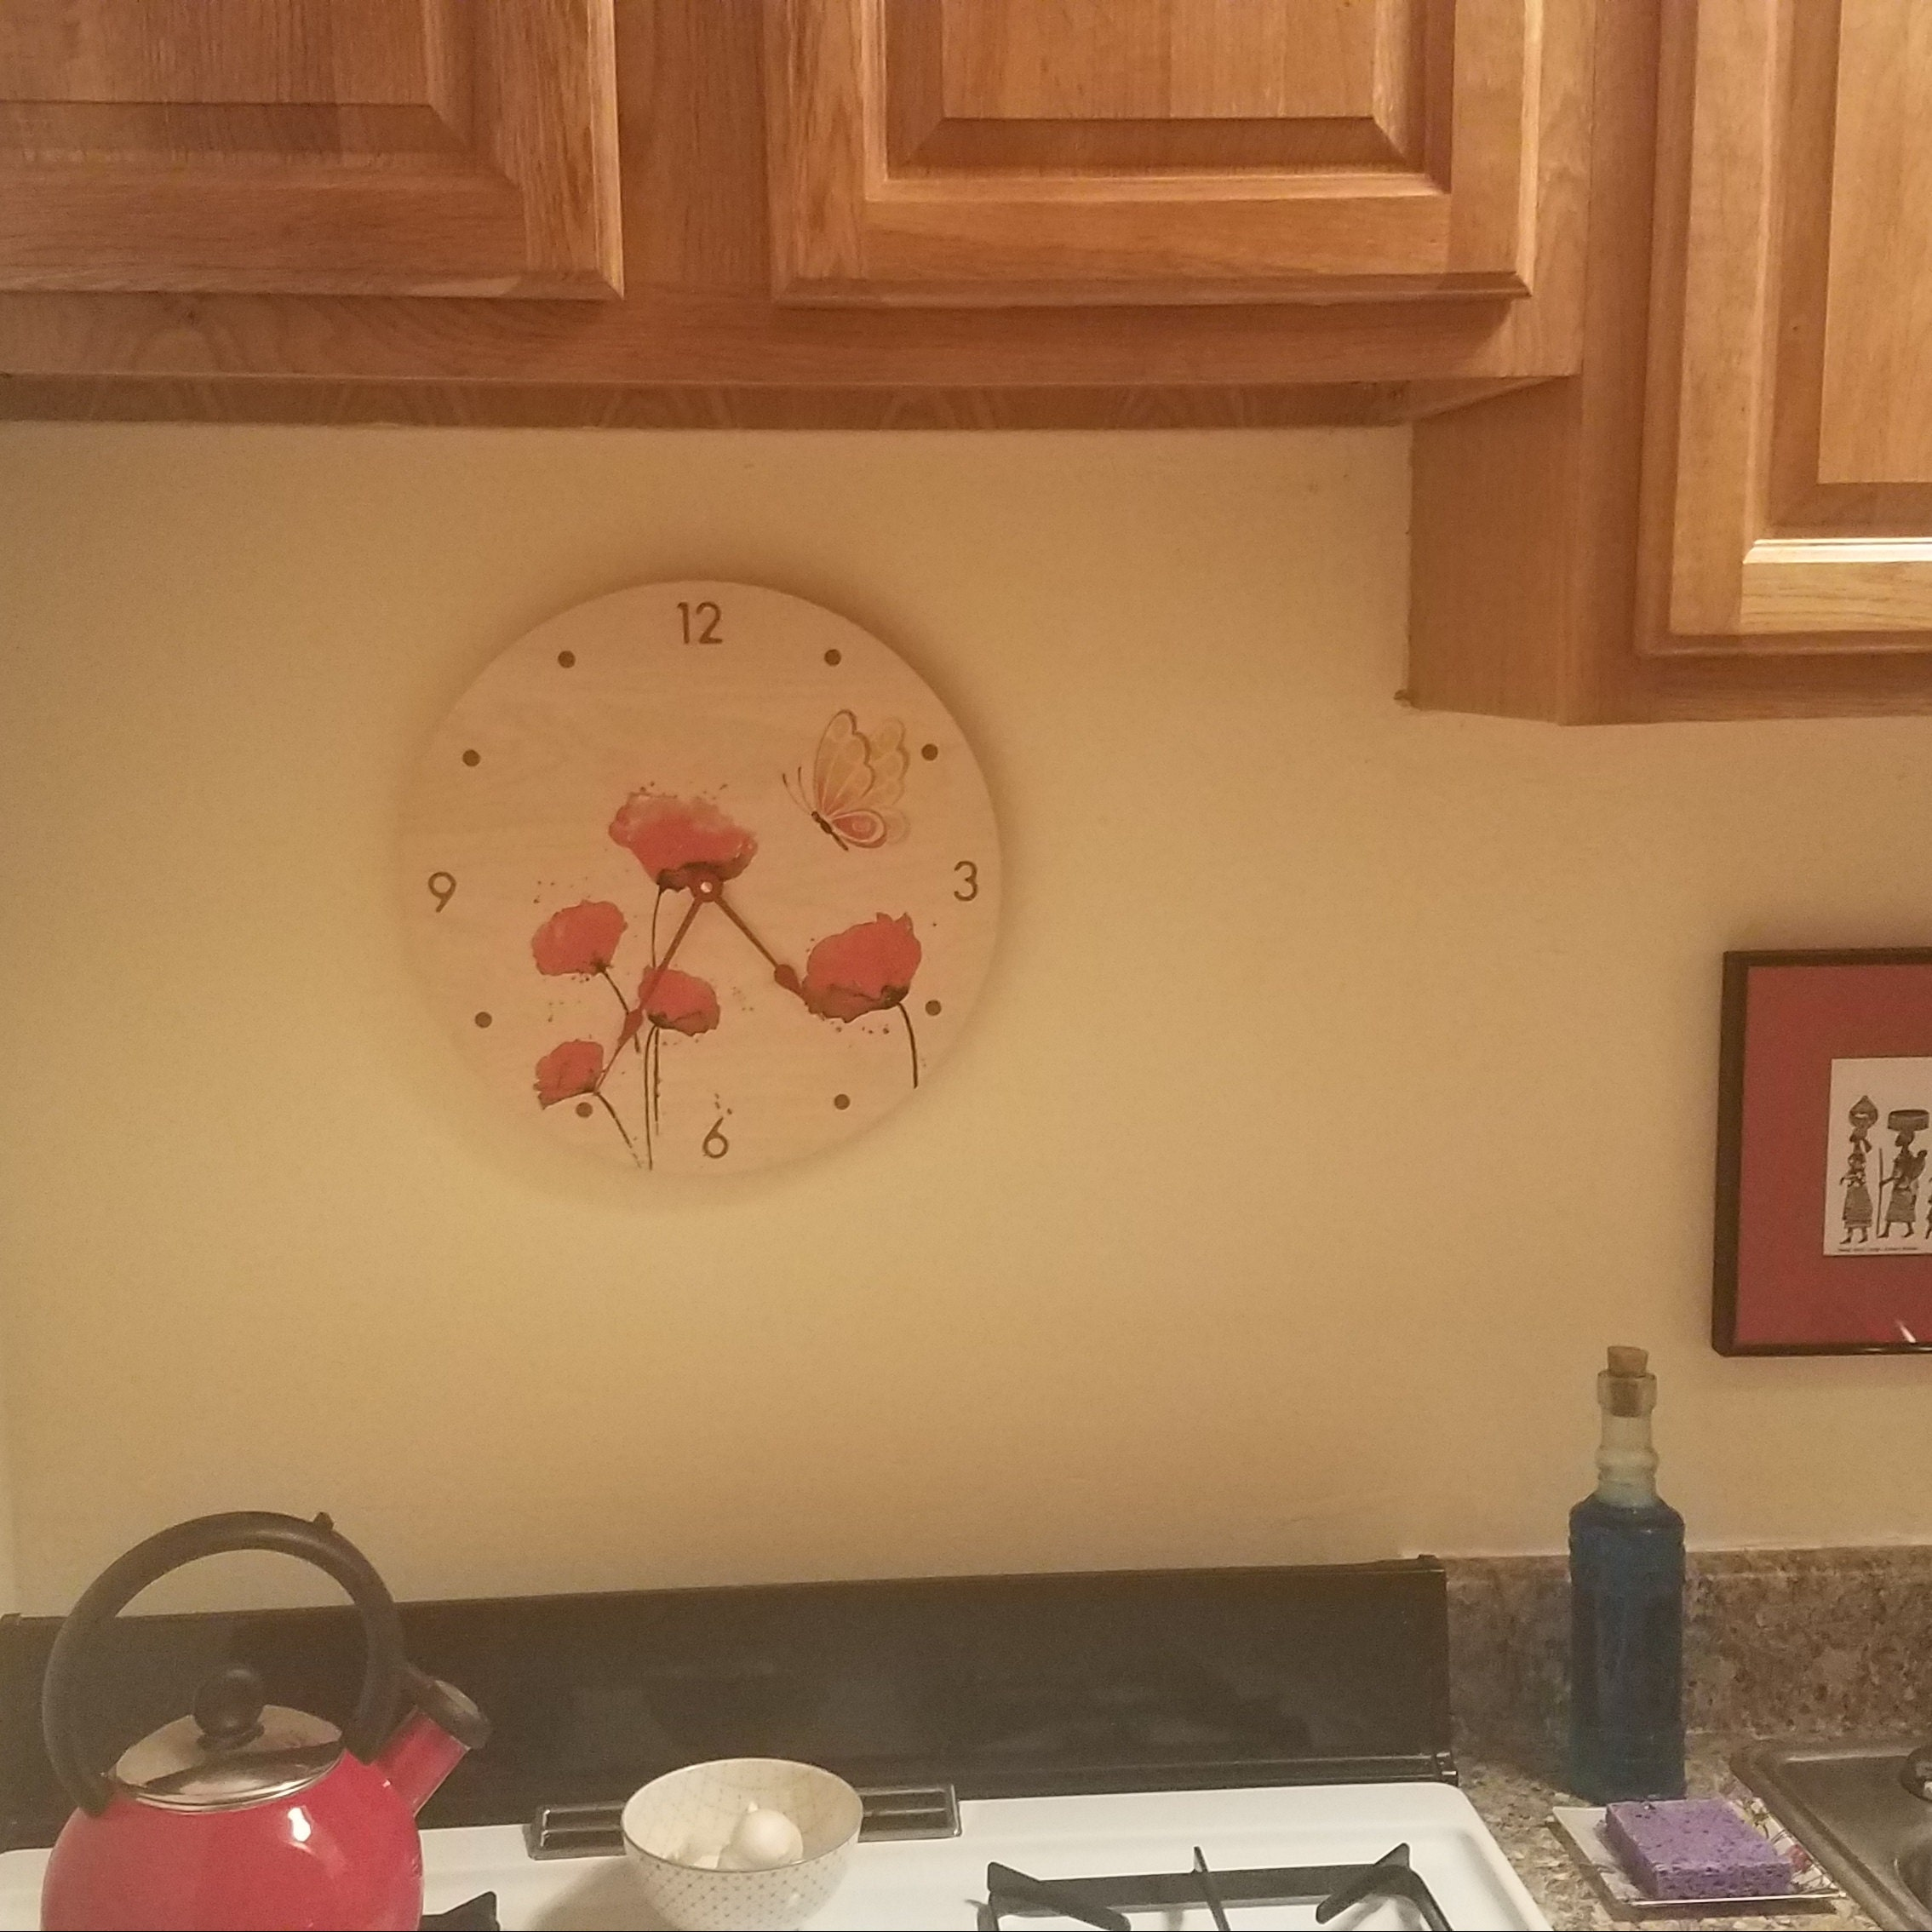 Linda Johnson added a photo of their purchase